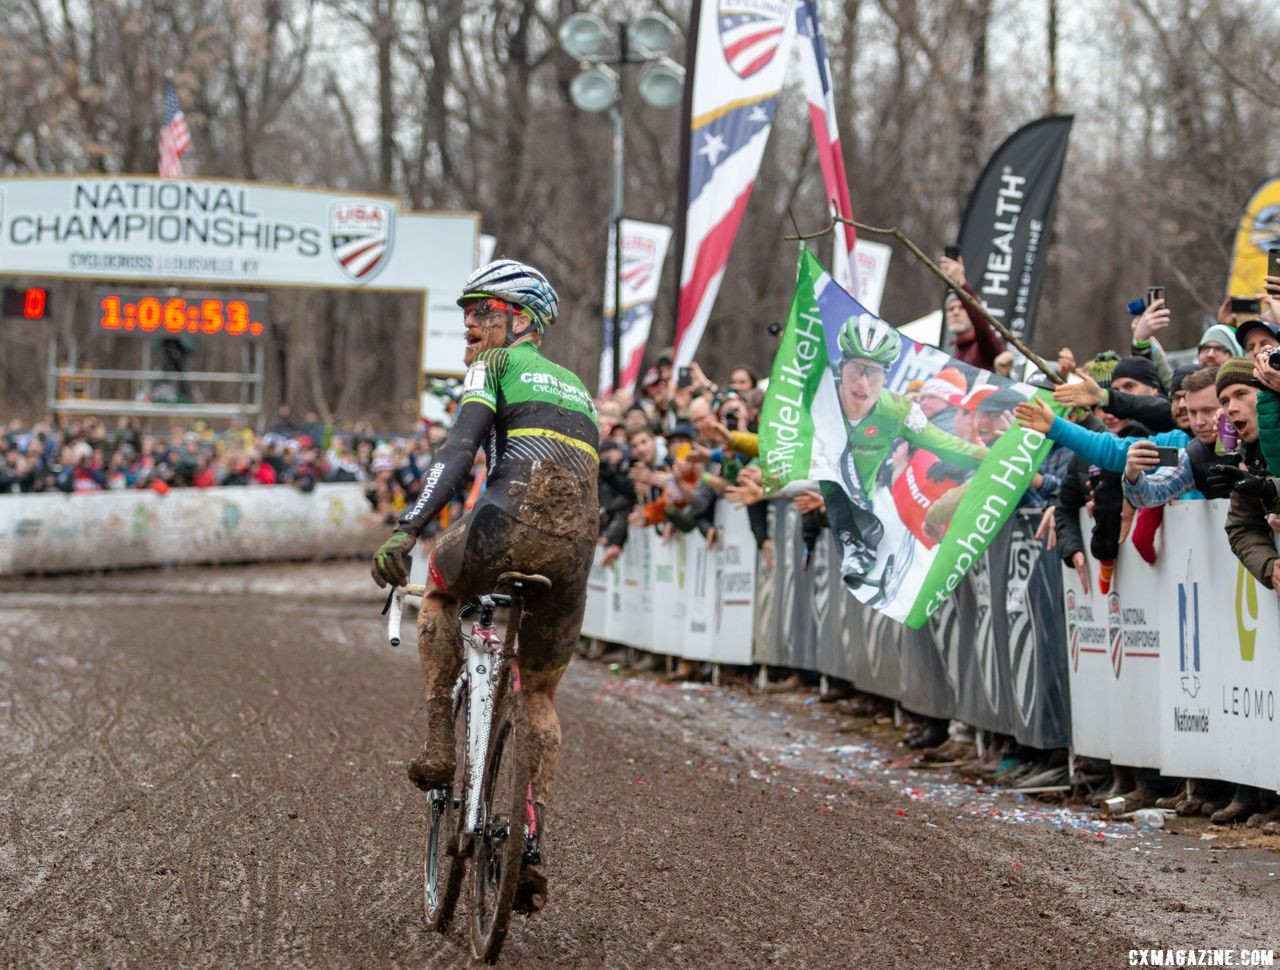 Hyde was the top pick to win in Louisville and he came through on his favored status. Elite Men's Cyclocross National Championship in Louisville, KY. © A. Yee / Cyclocross Magazine